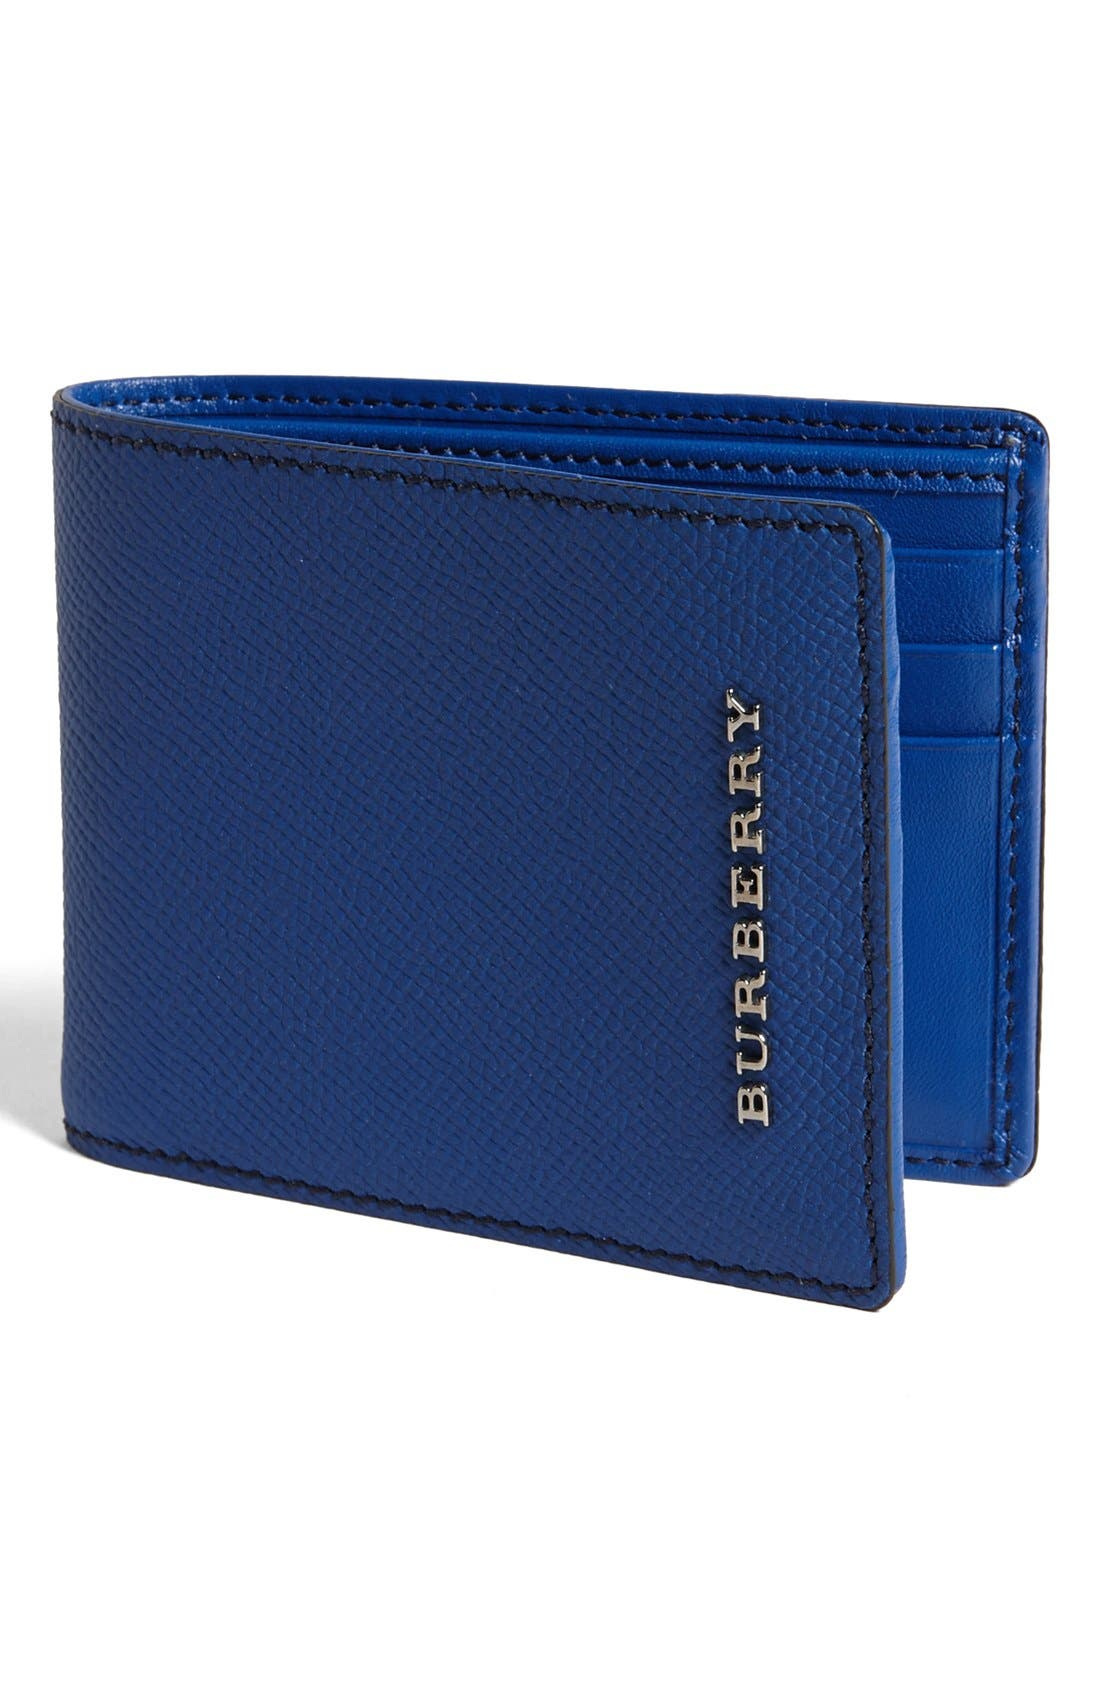 Main Image - Burberry Bifold Leather Wallet